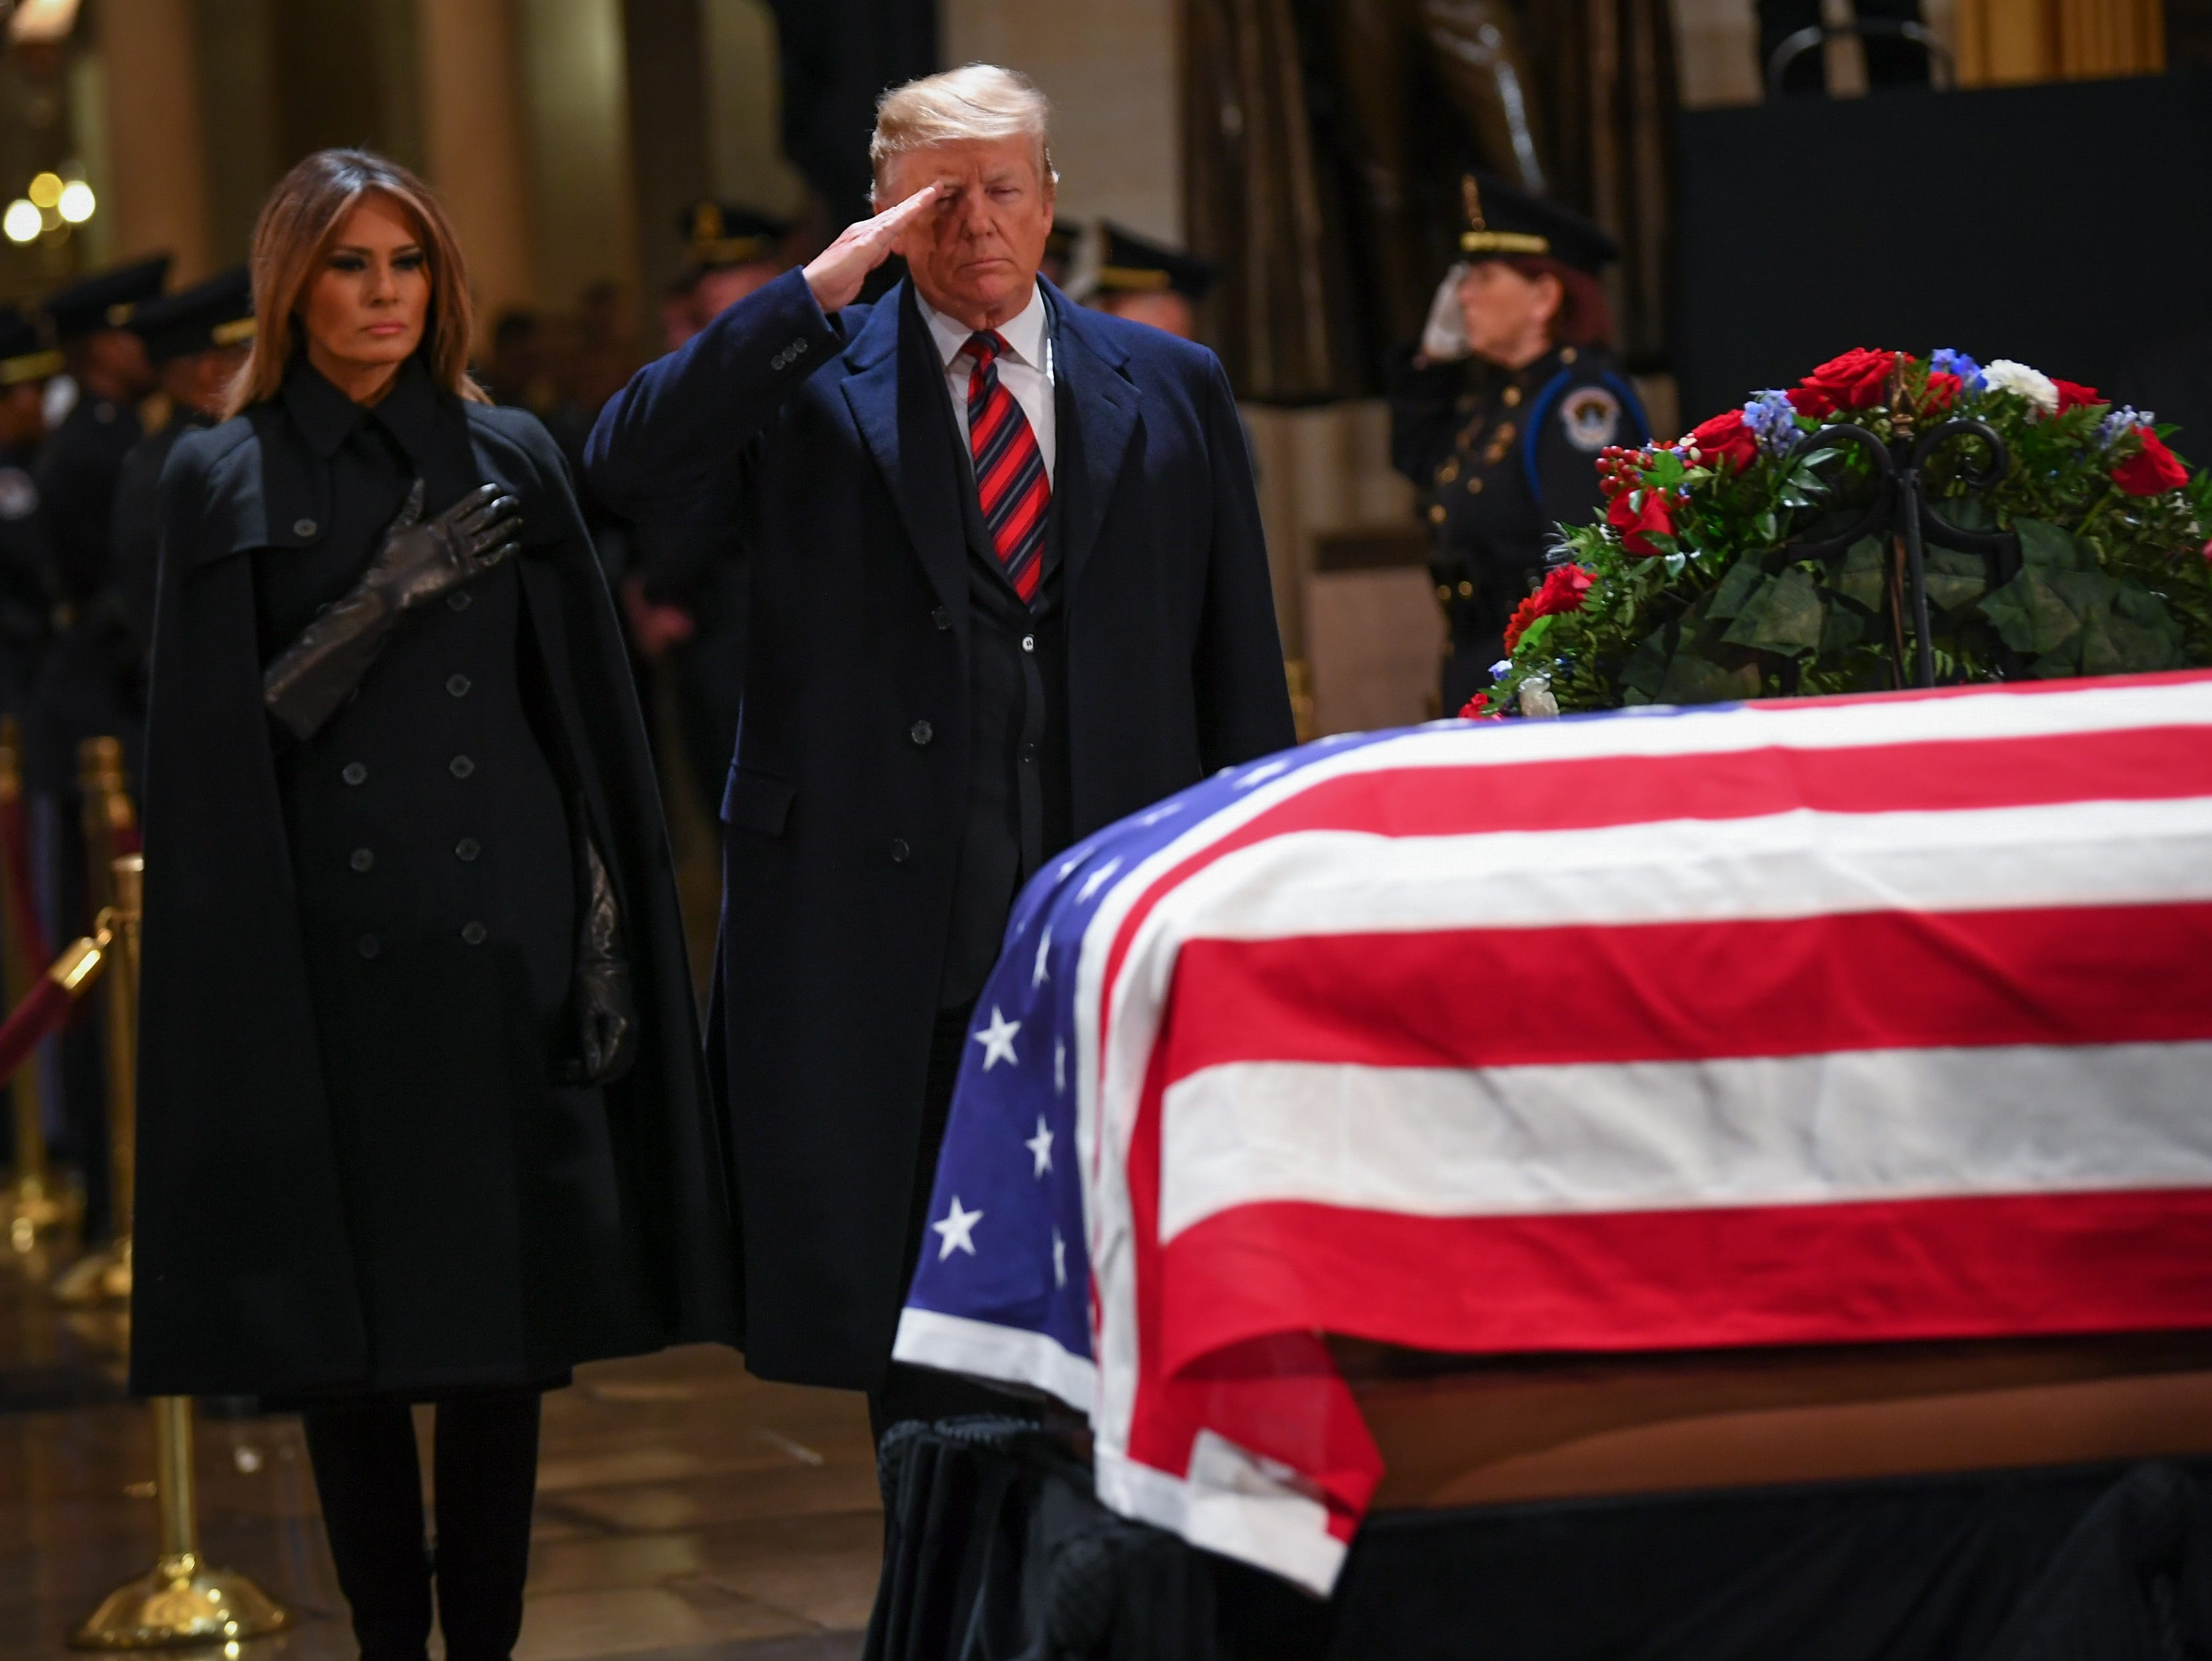 President Donald Trump and First Lady Melania Trump pay their respects to former President George H.W. Bush as the 41st President lies in state at the U.S. Capitol Rotunda on Dec. 3, 2018.